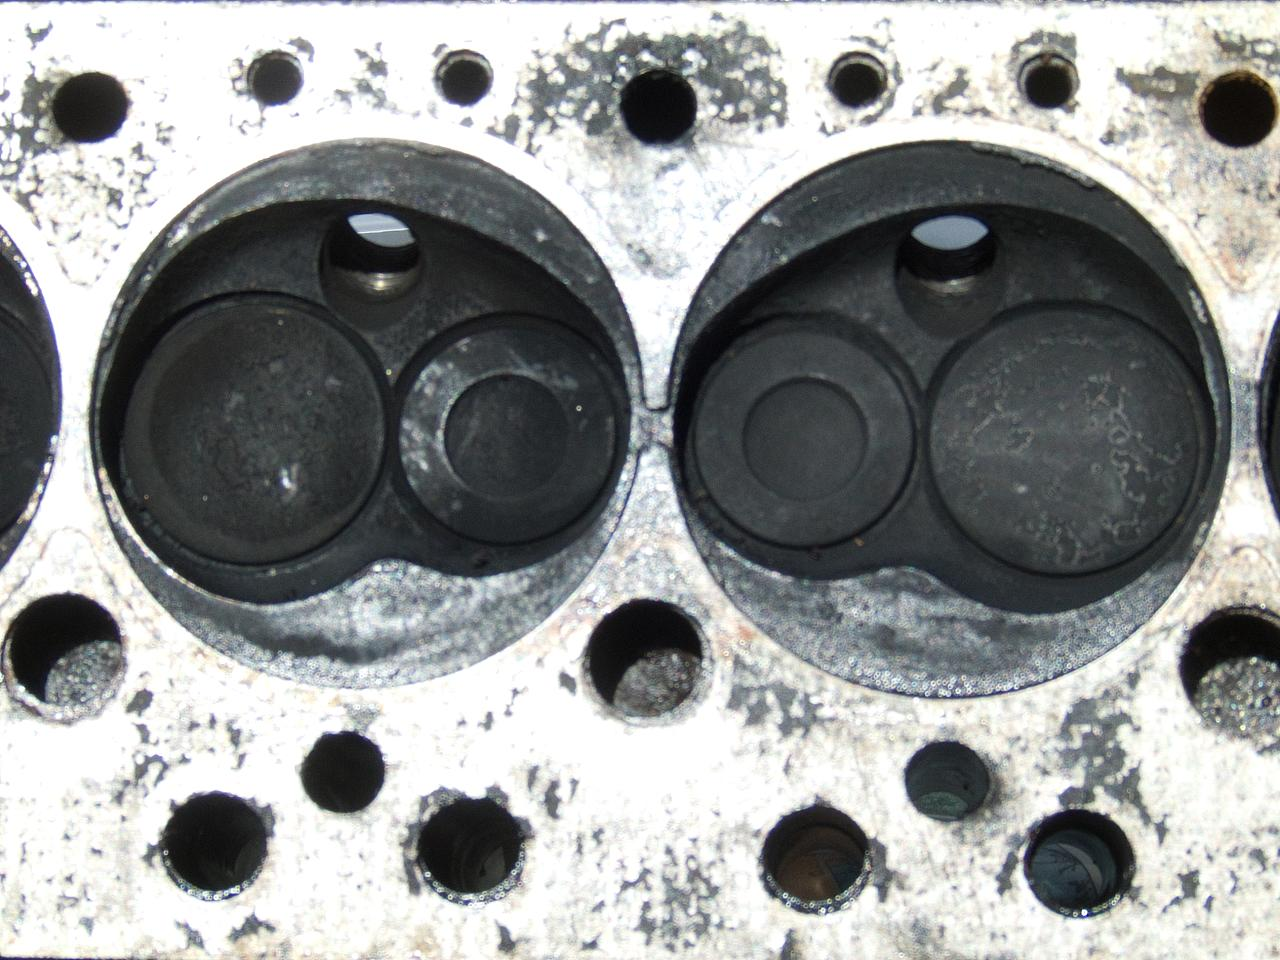 File:Morris Marina Blown head gasket.jpg - Wikimedia Commons